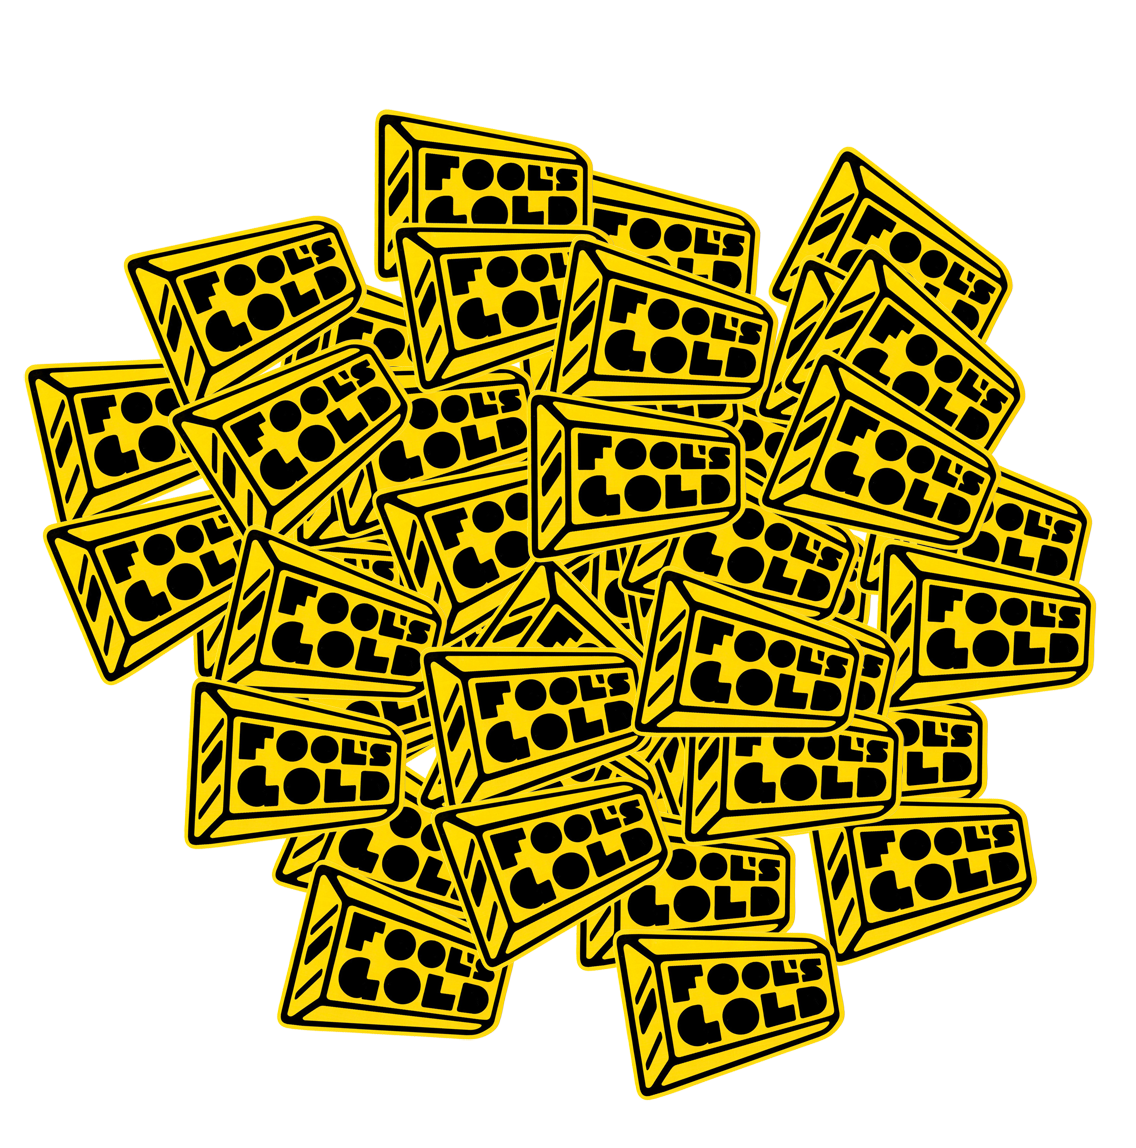 free fools gold stickers